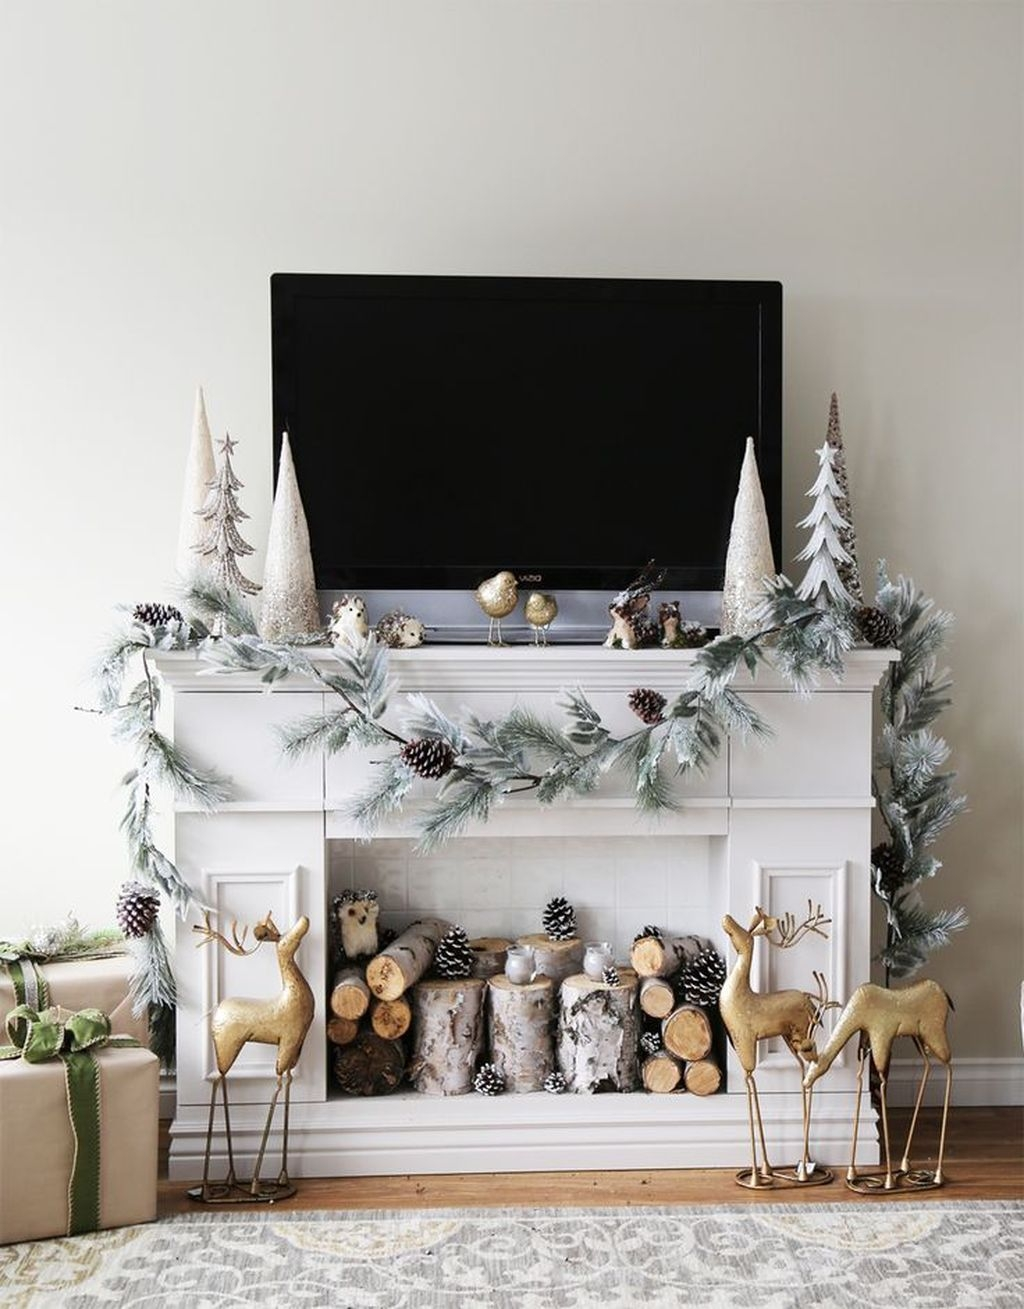 Cozy Fireplace Christmas Decoration Ideas To Makes Your Room Keep Warm43